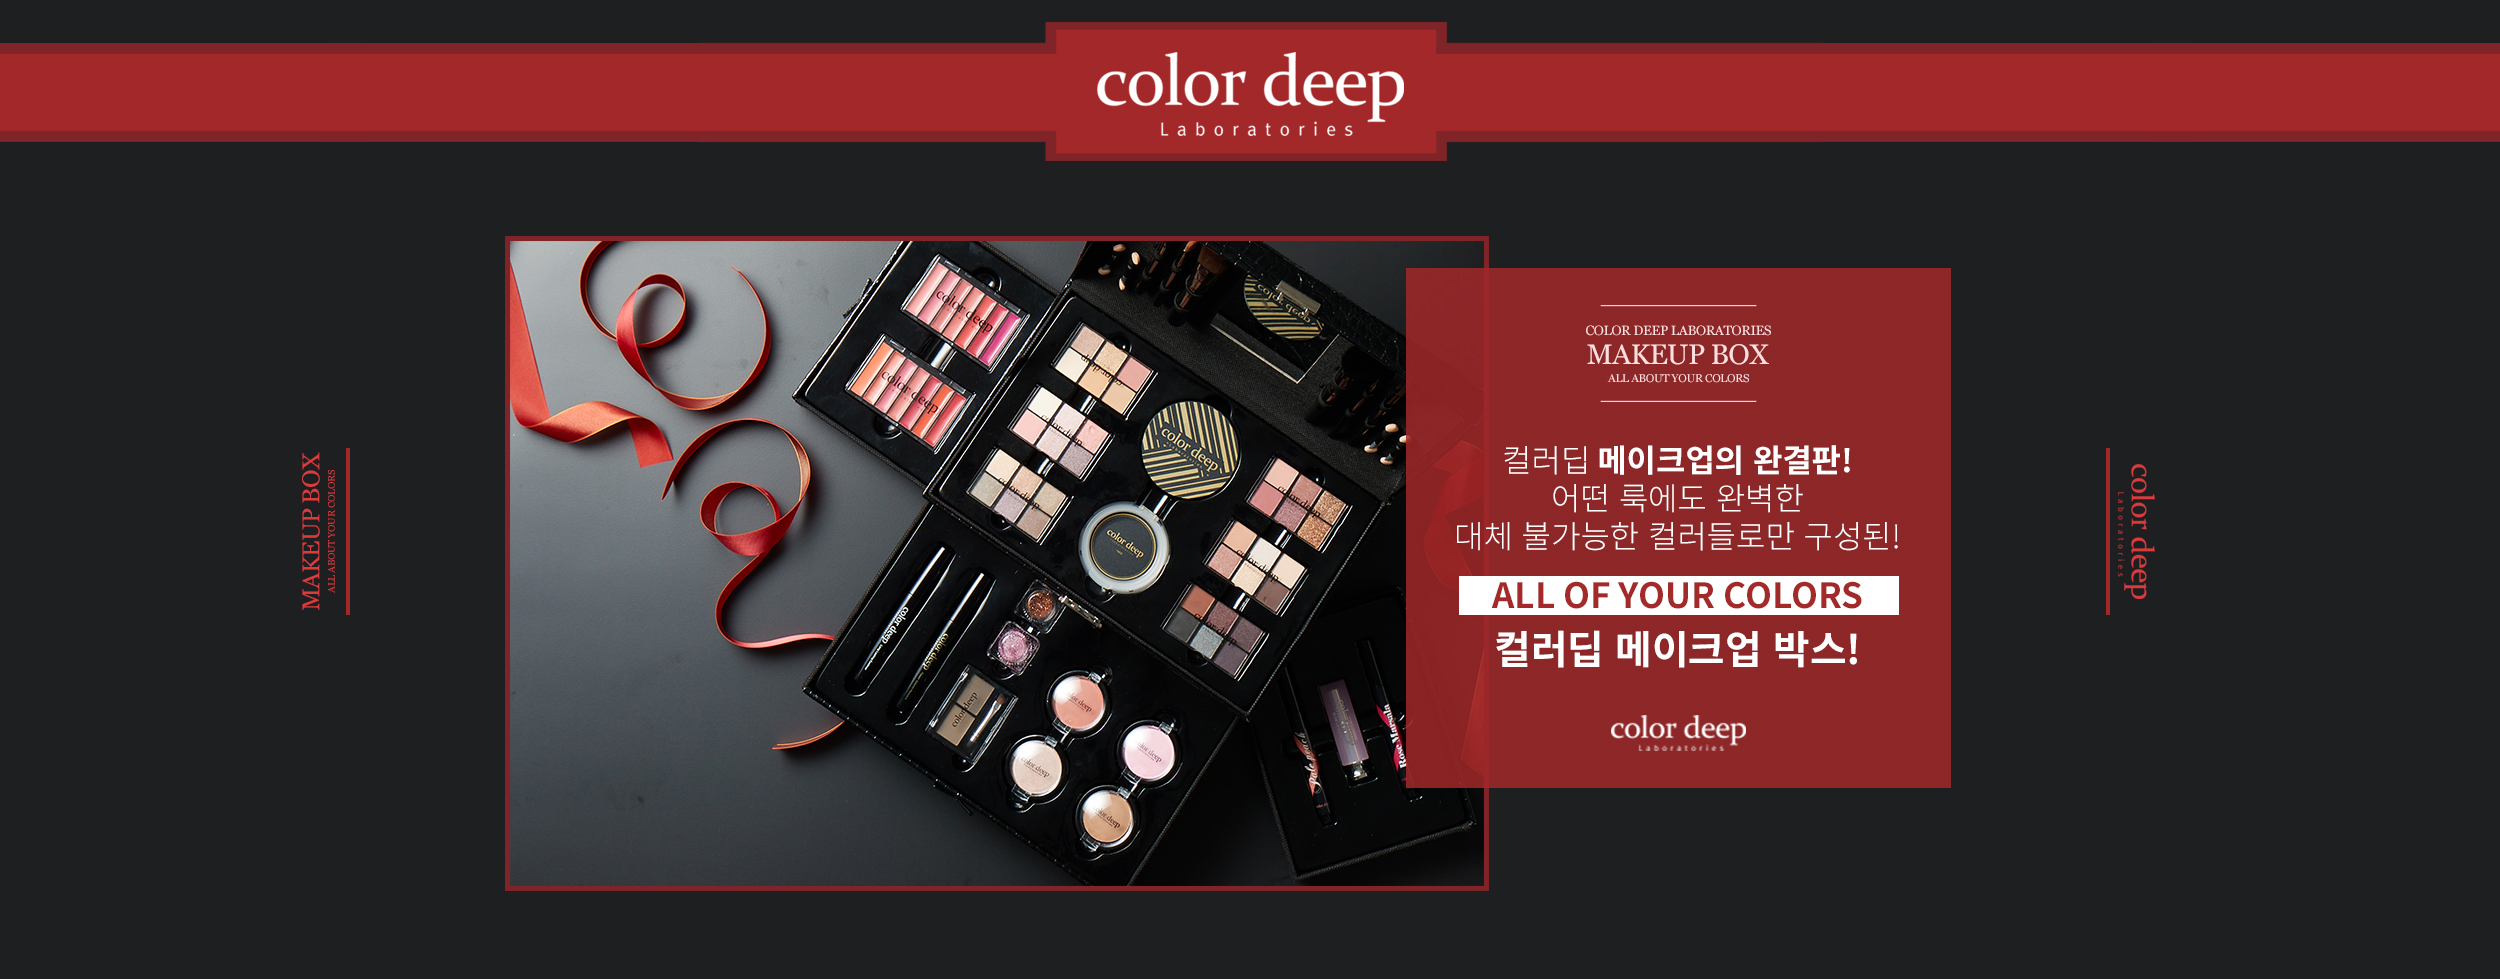 color deep_makeupbox